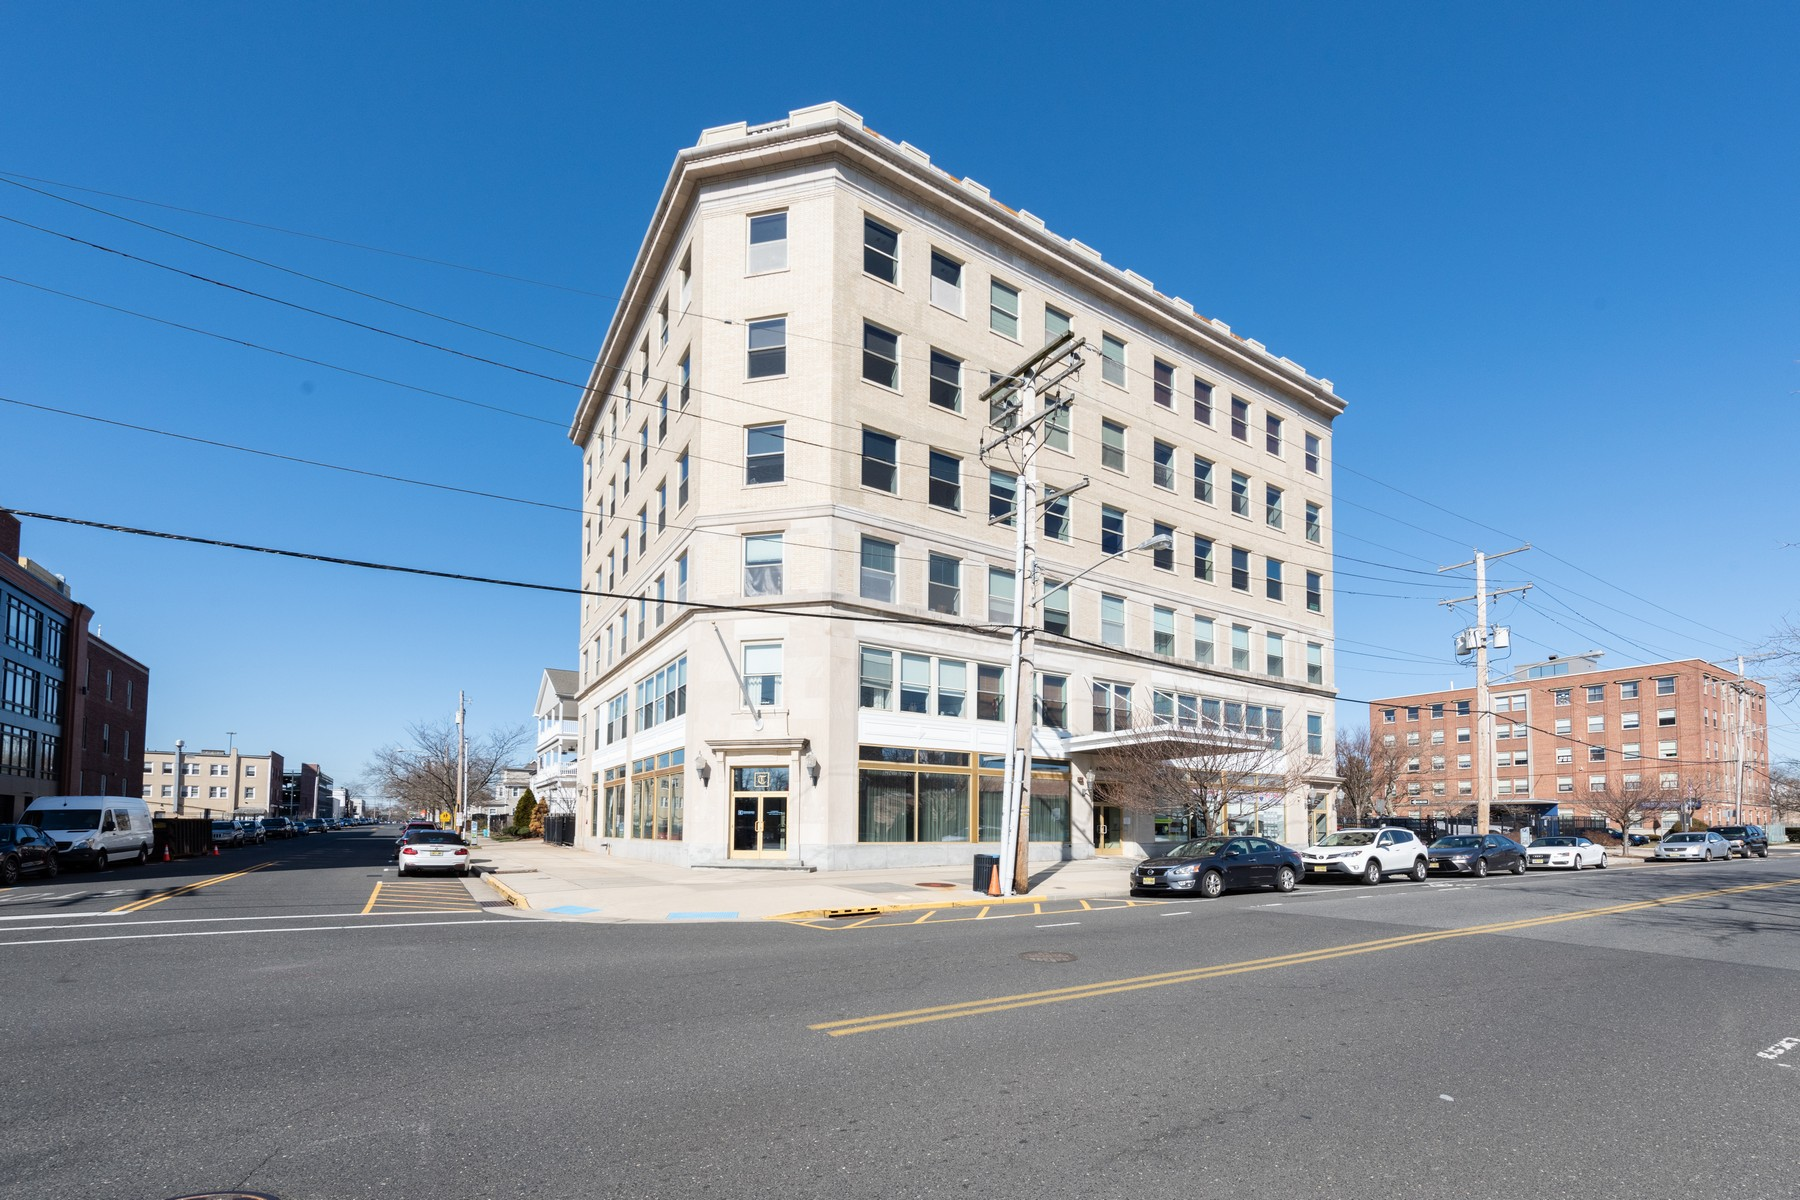 Condominiums for Sale at Asbury Grand 501 Grand Ave 3E Asbury Park, New Jersey 07712 United States